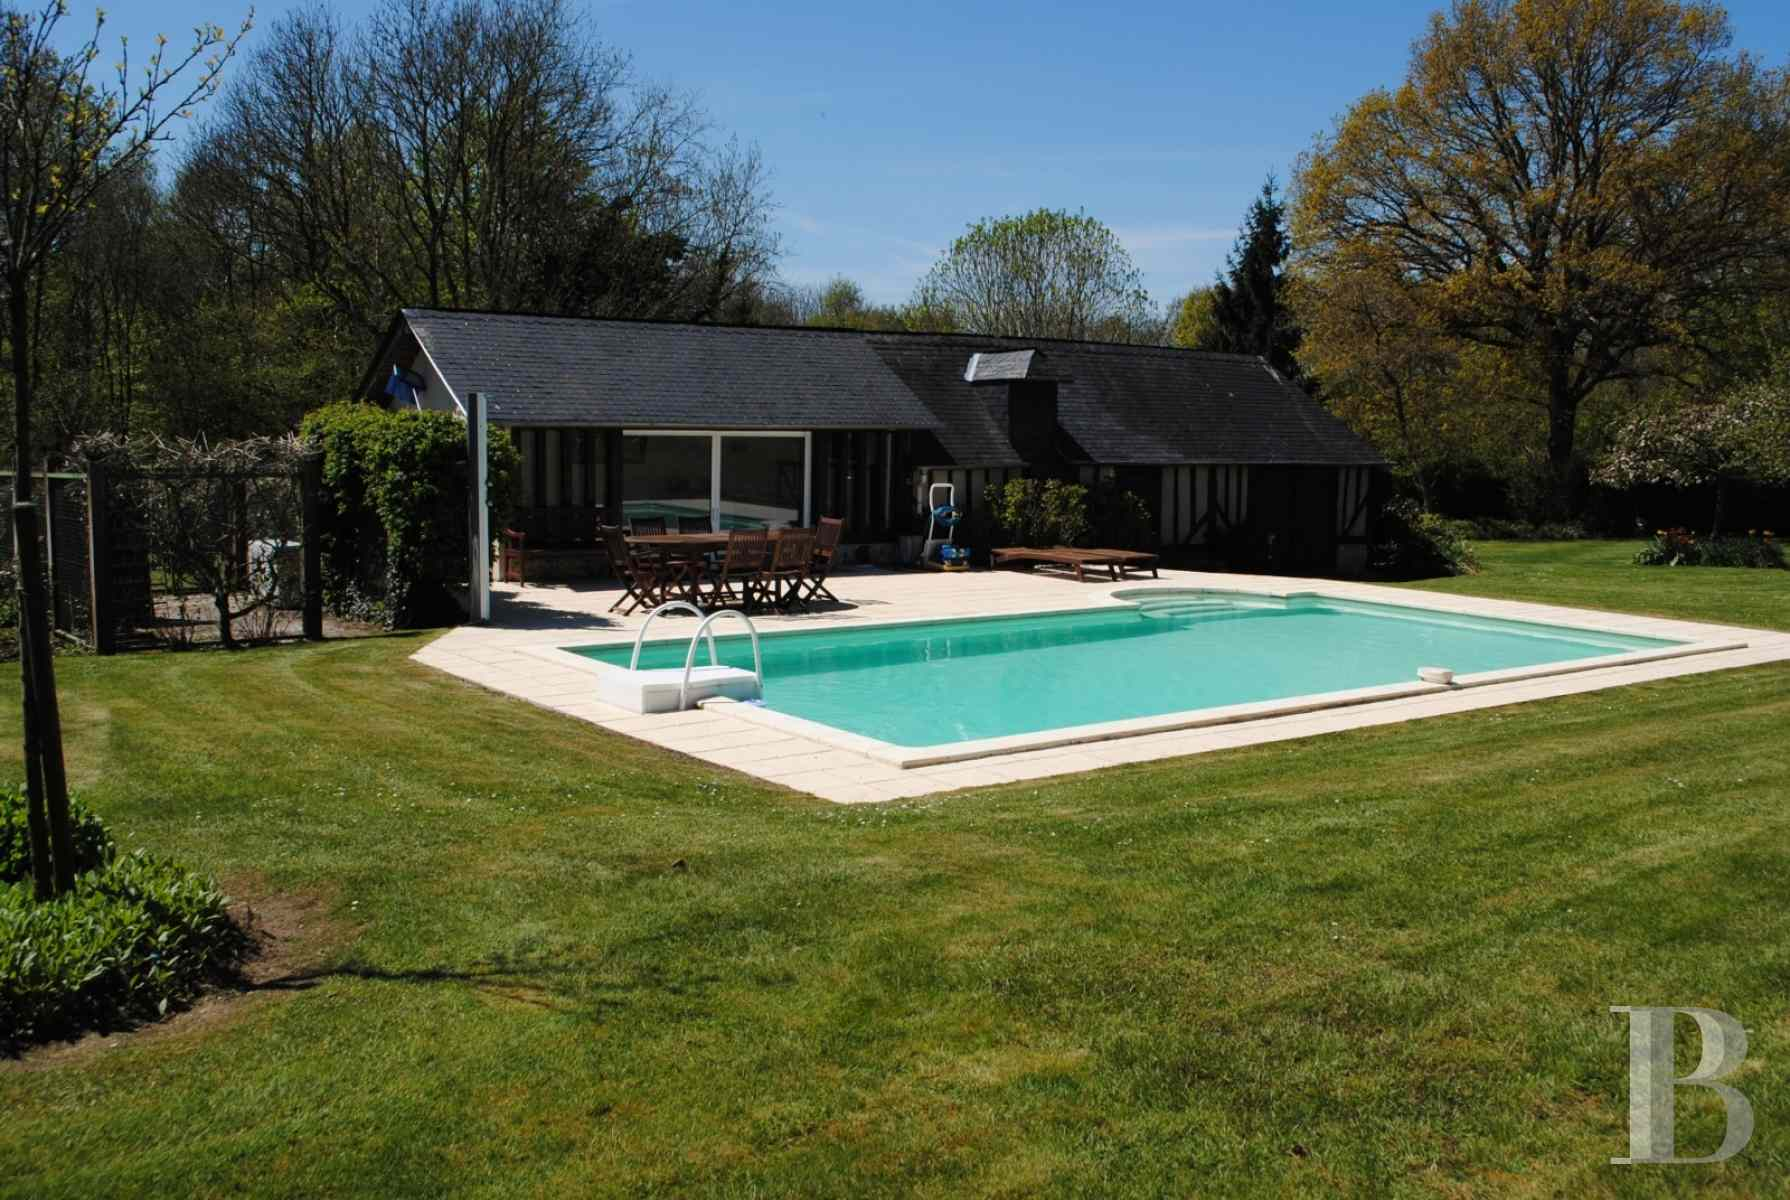 property for sale France upper normandy listed village - 7 zoom